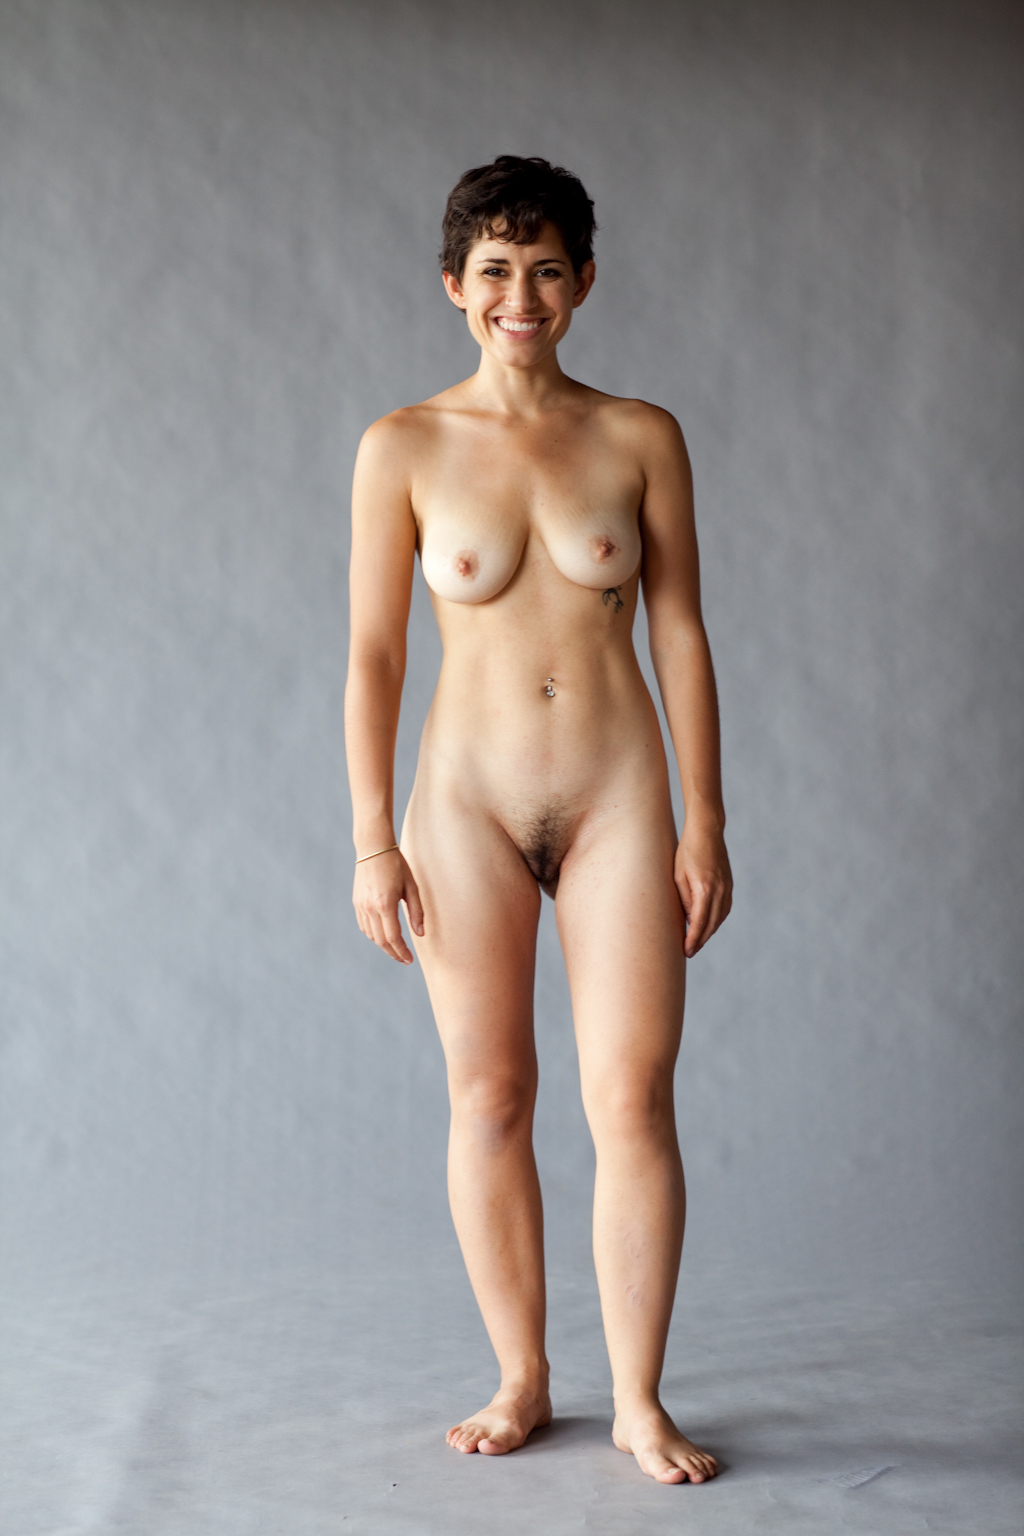 Mike dawson nude brunette